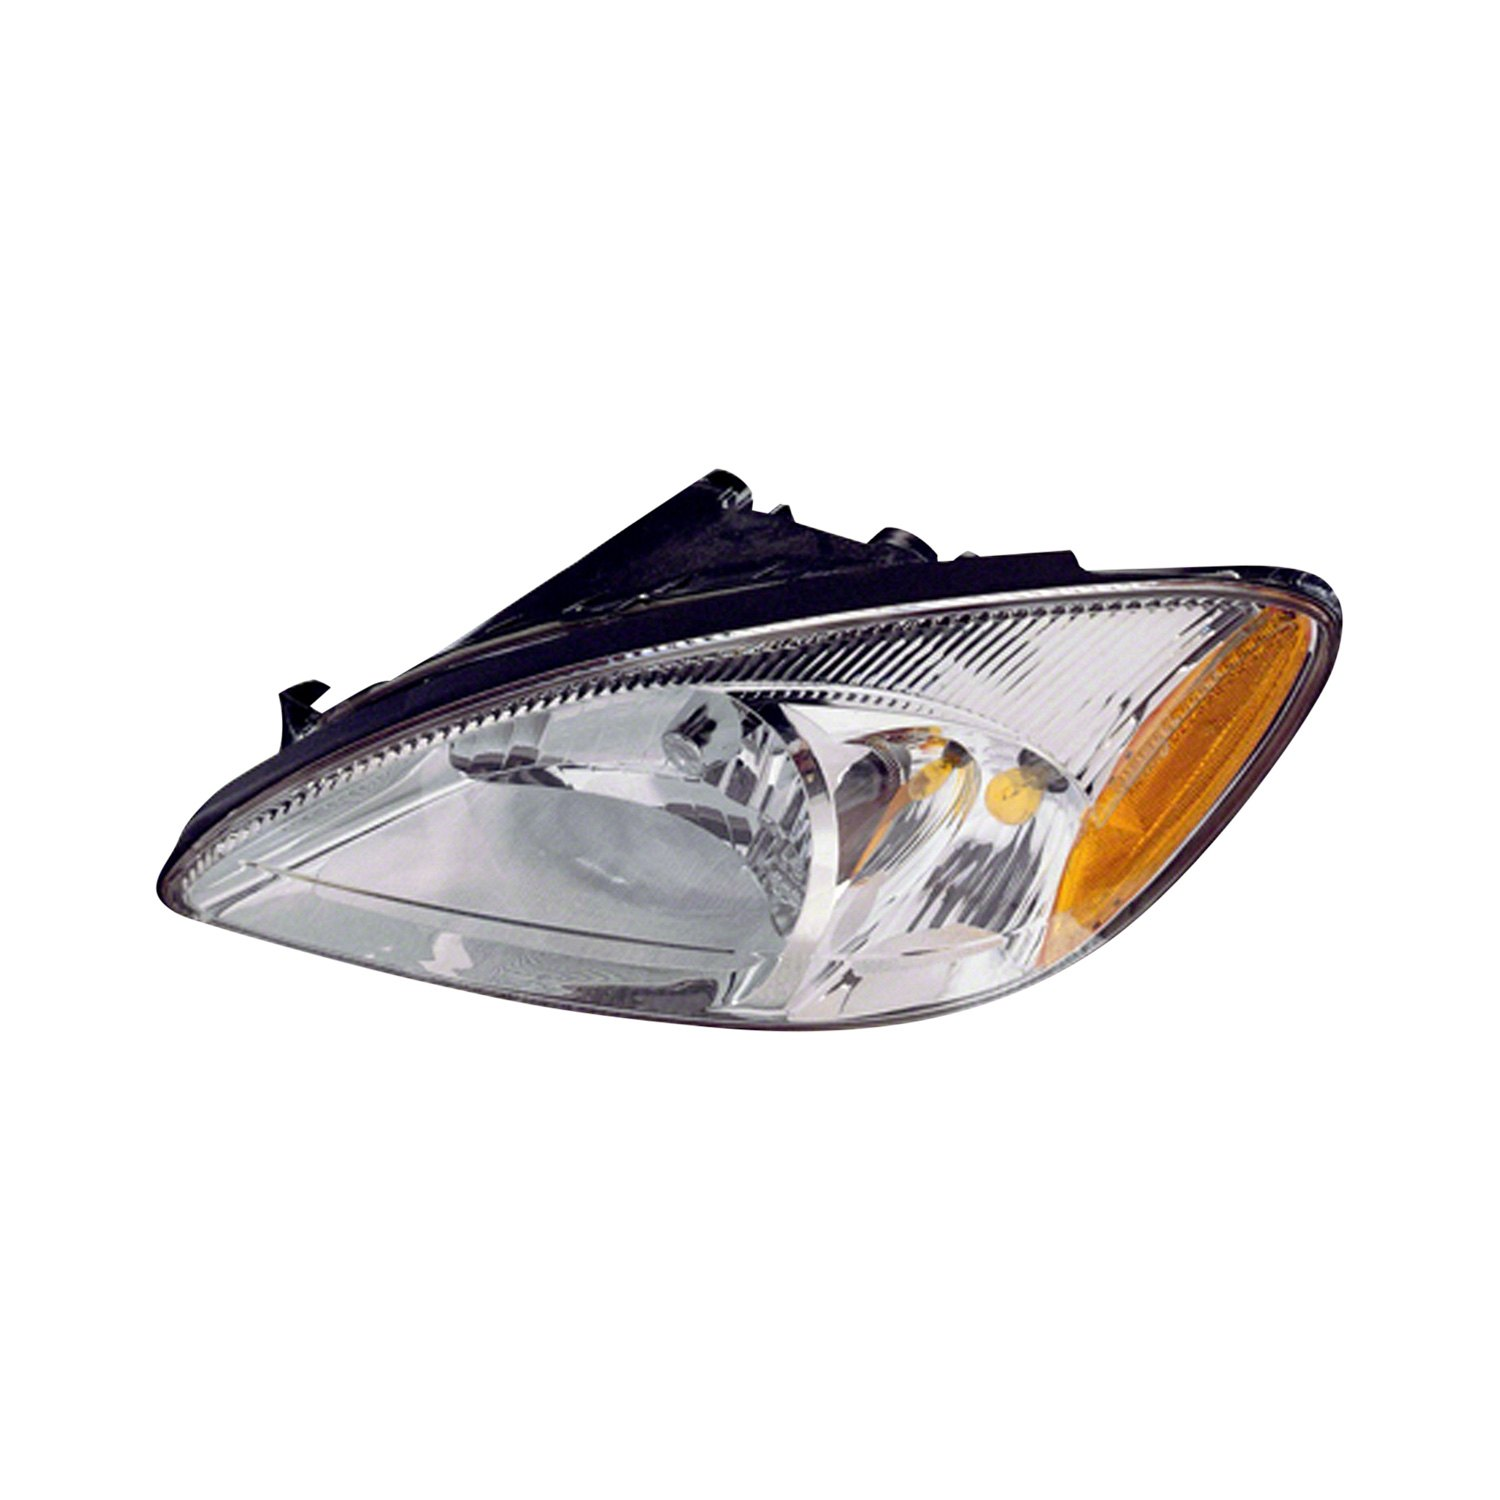 2013 Ford Taurus Headlight Replacement : Ford taurus headlamp replacement video search